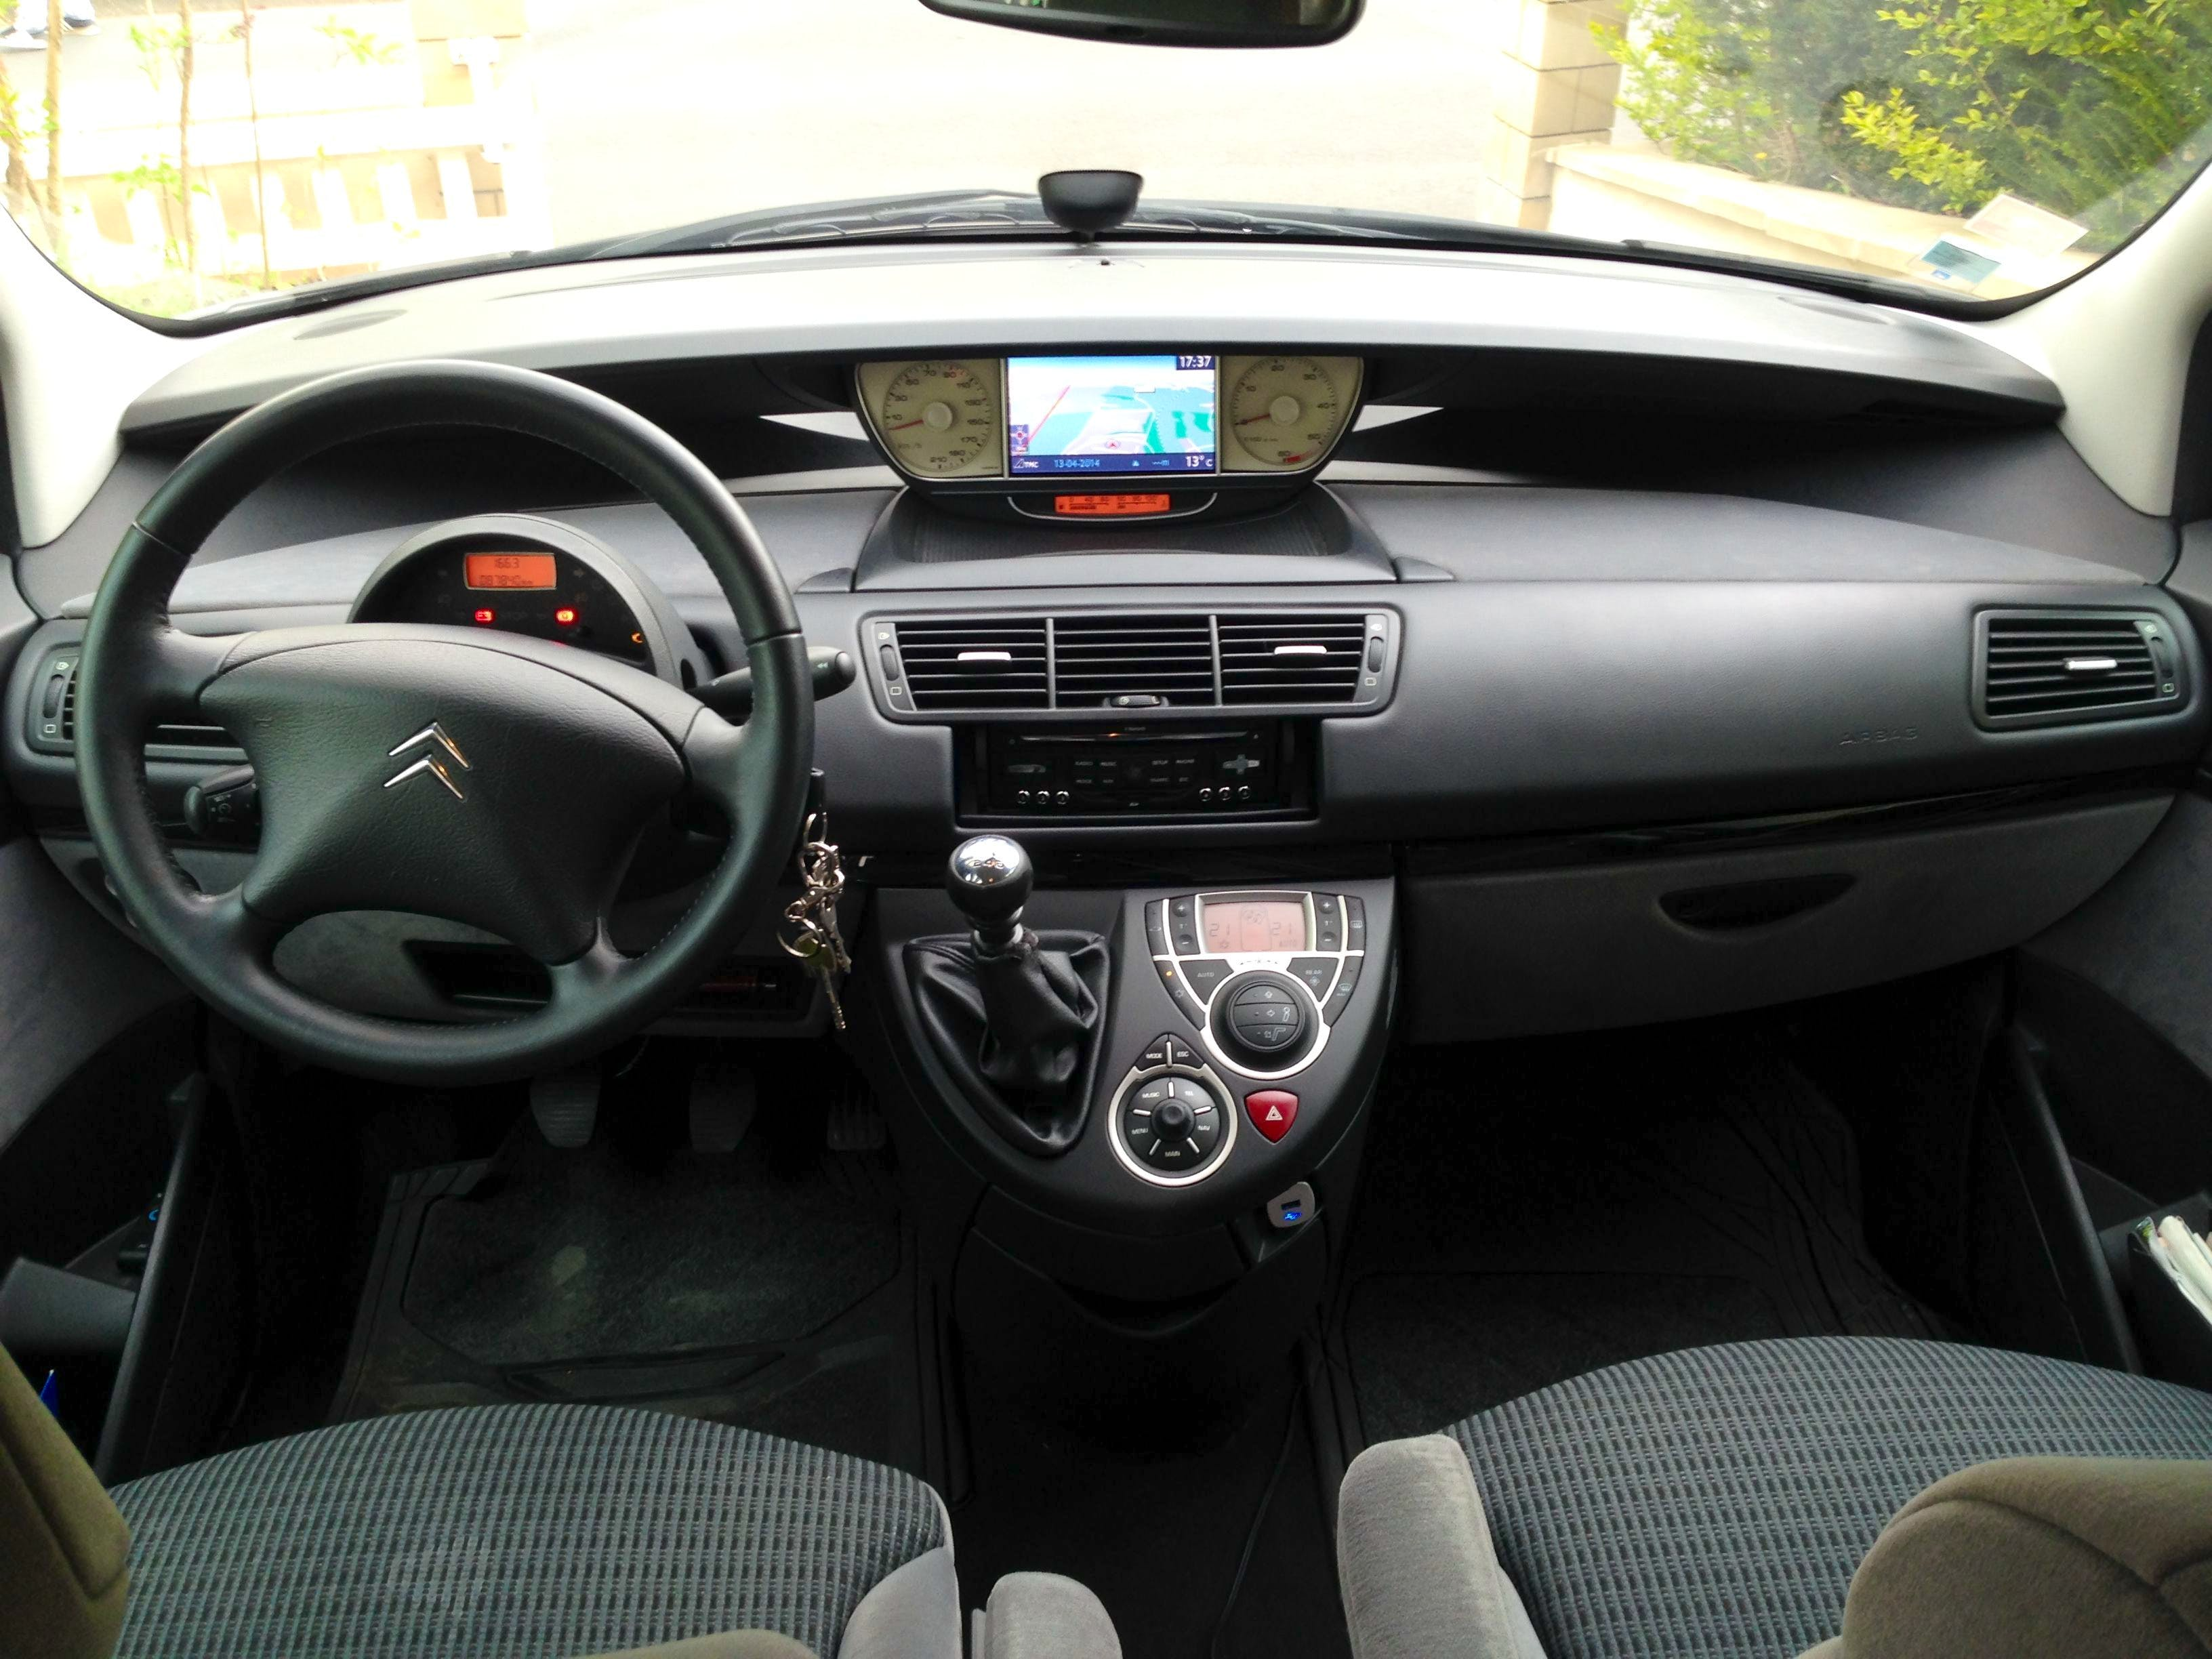 location citroen c8 2010 diesel 7 places  u00e0 osny  27 chemin de la colonne